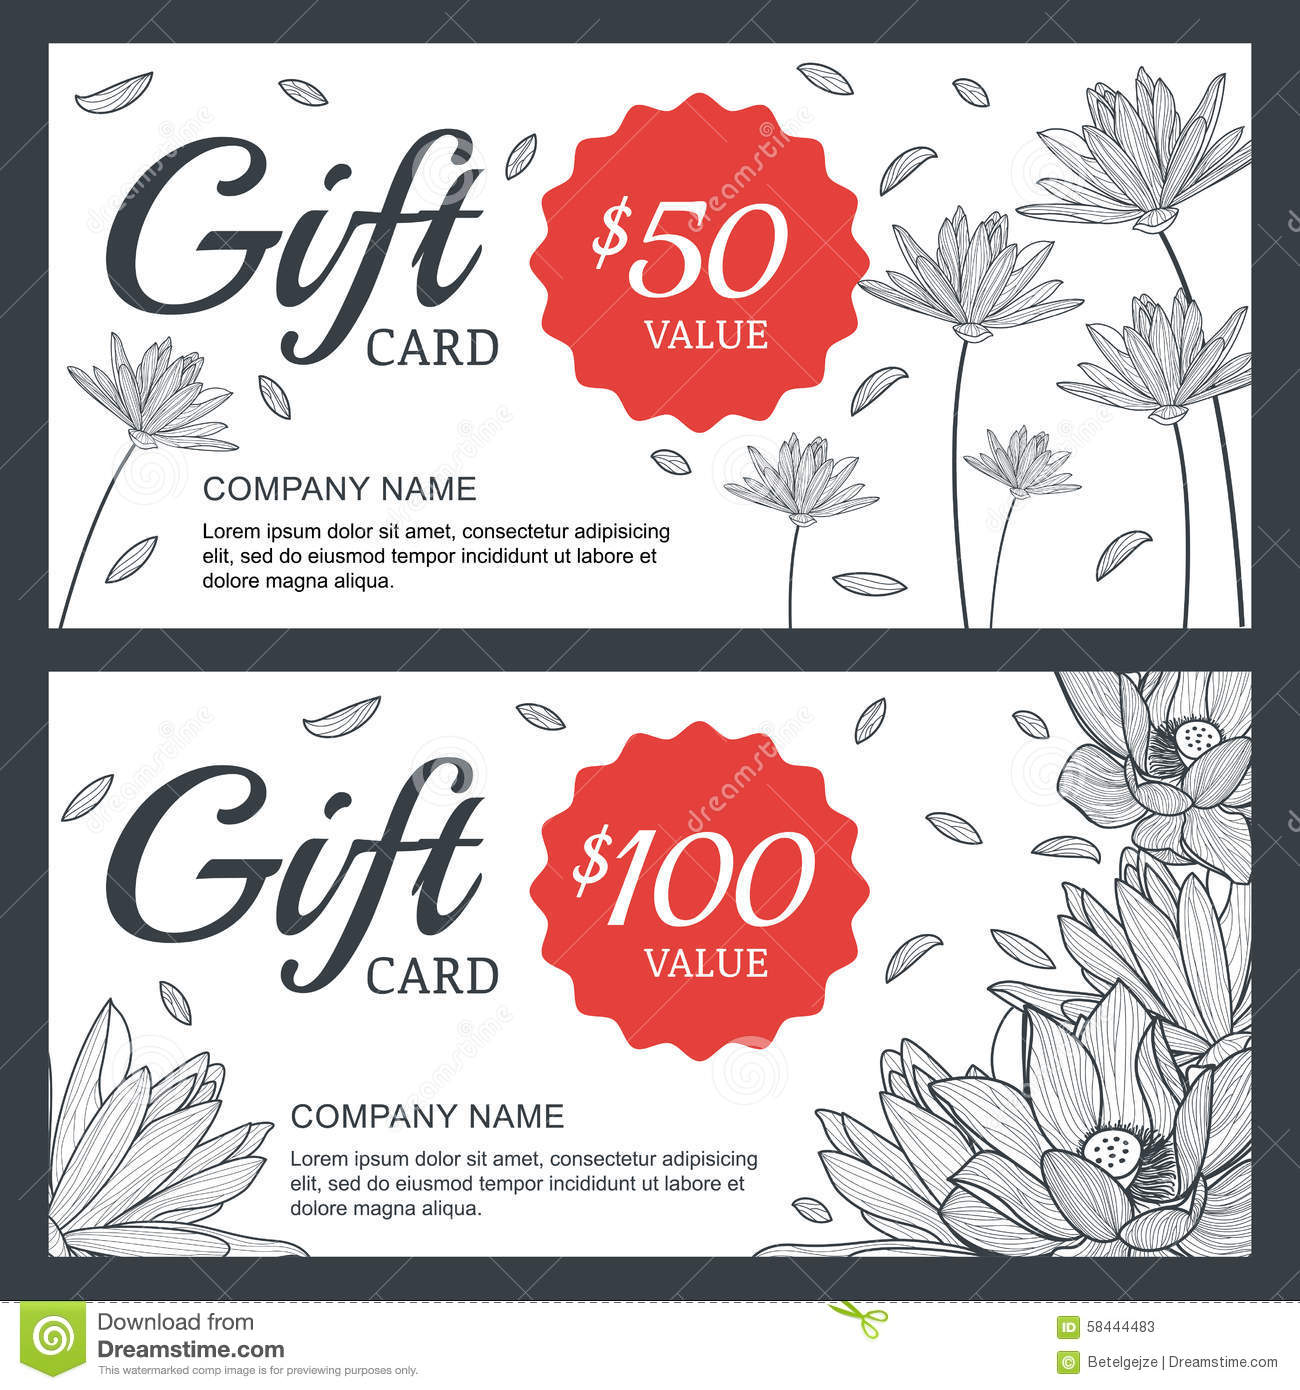 Coupon for lotus boutique